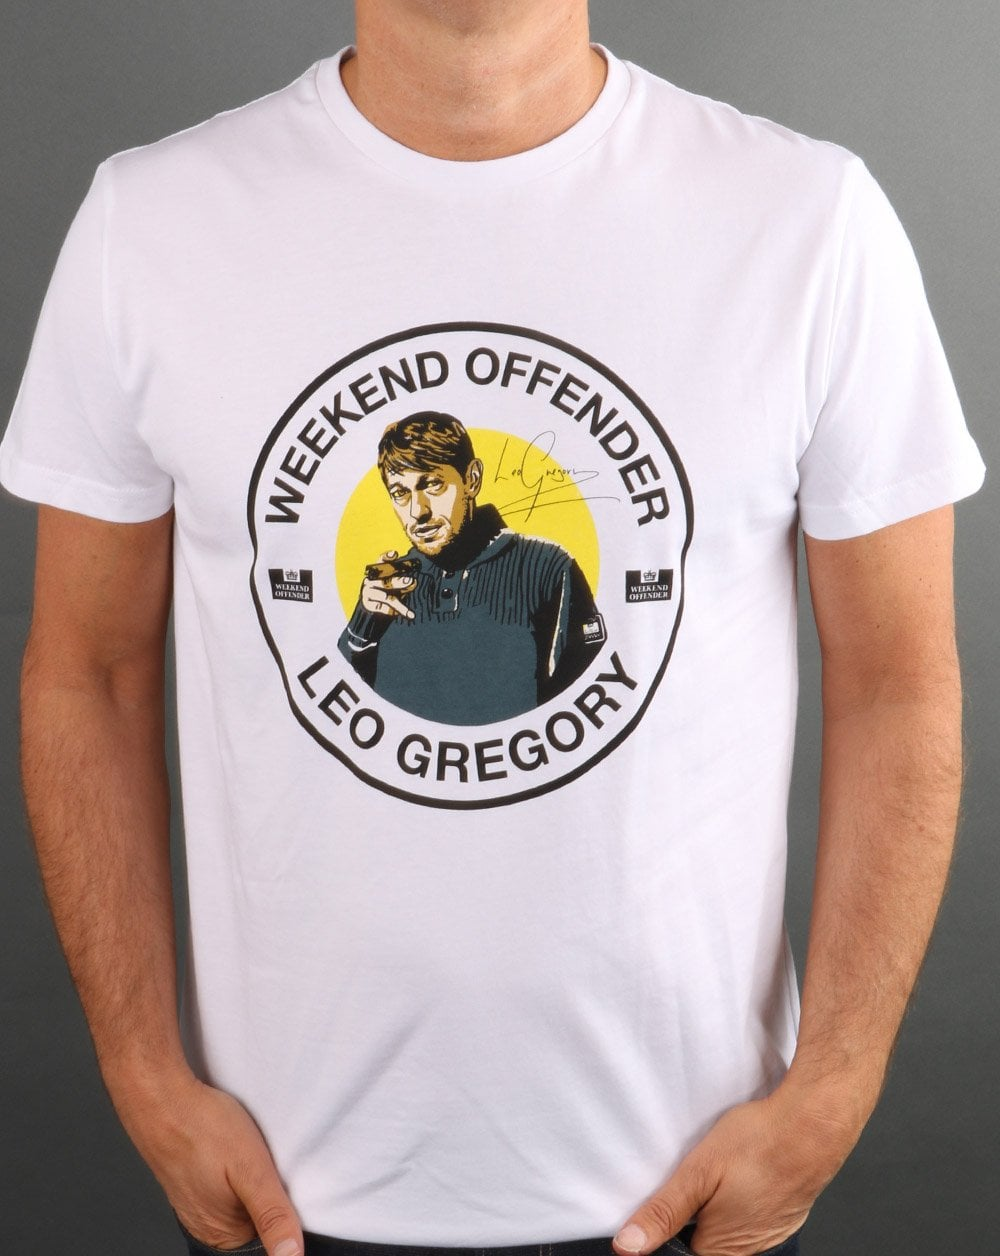 Leo Gregory x Weekend Offender Signature t-shirt